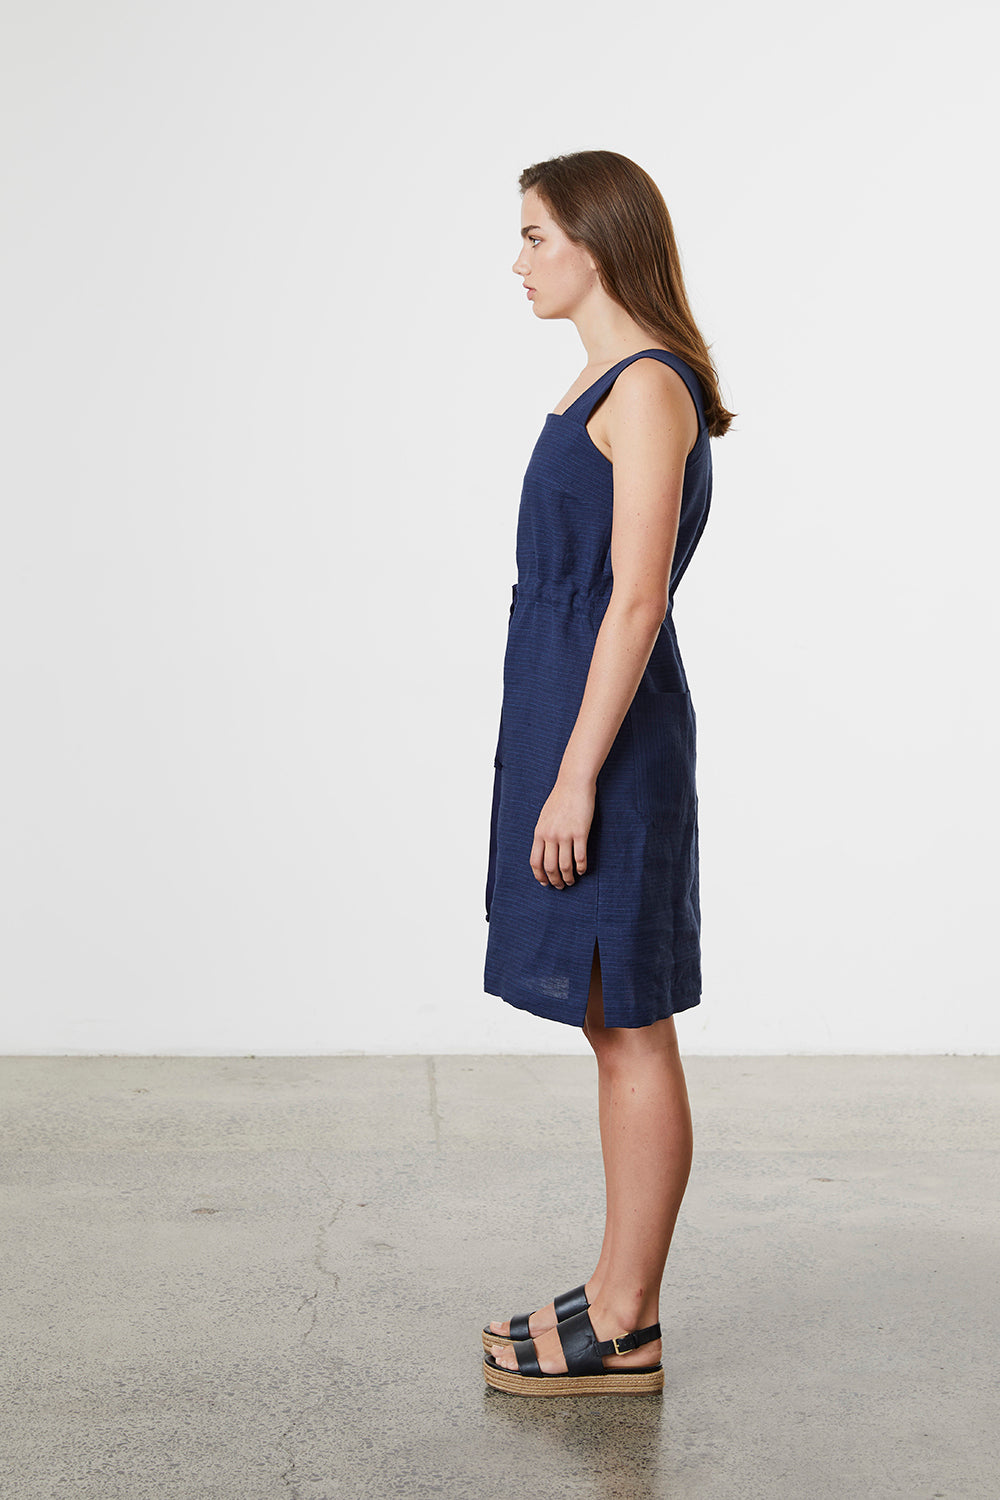 Linen Pinafore - Standard Issue